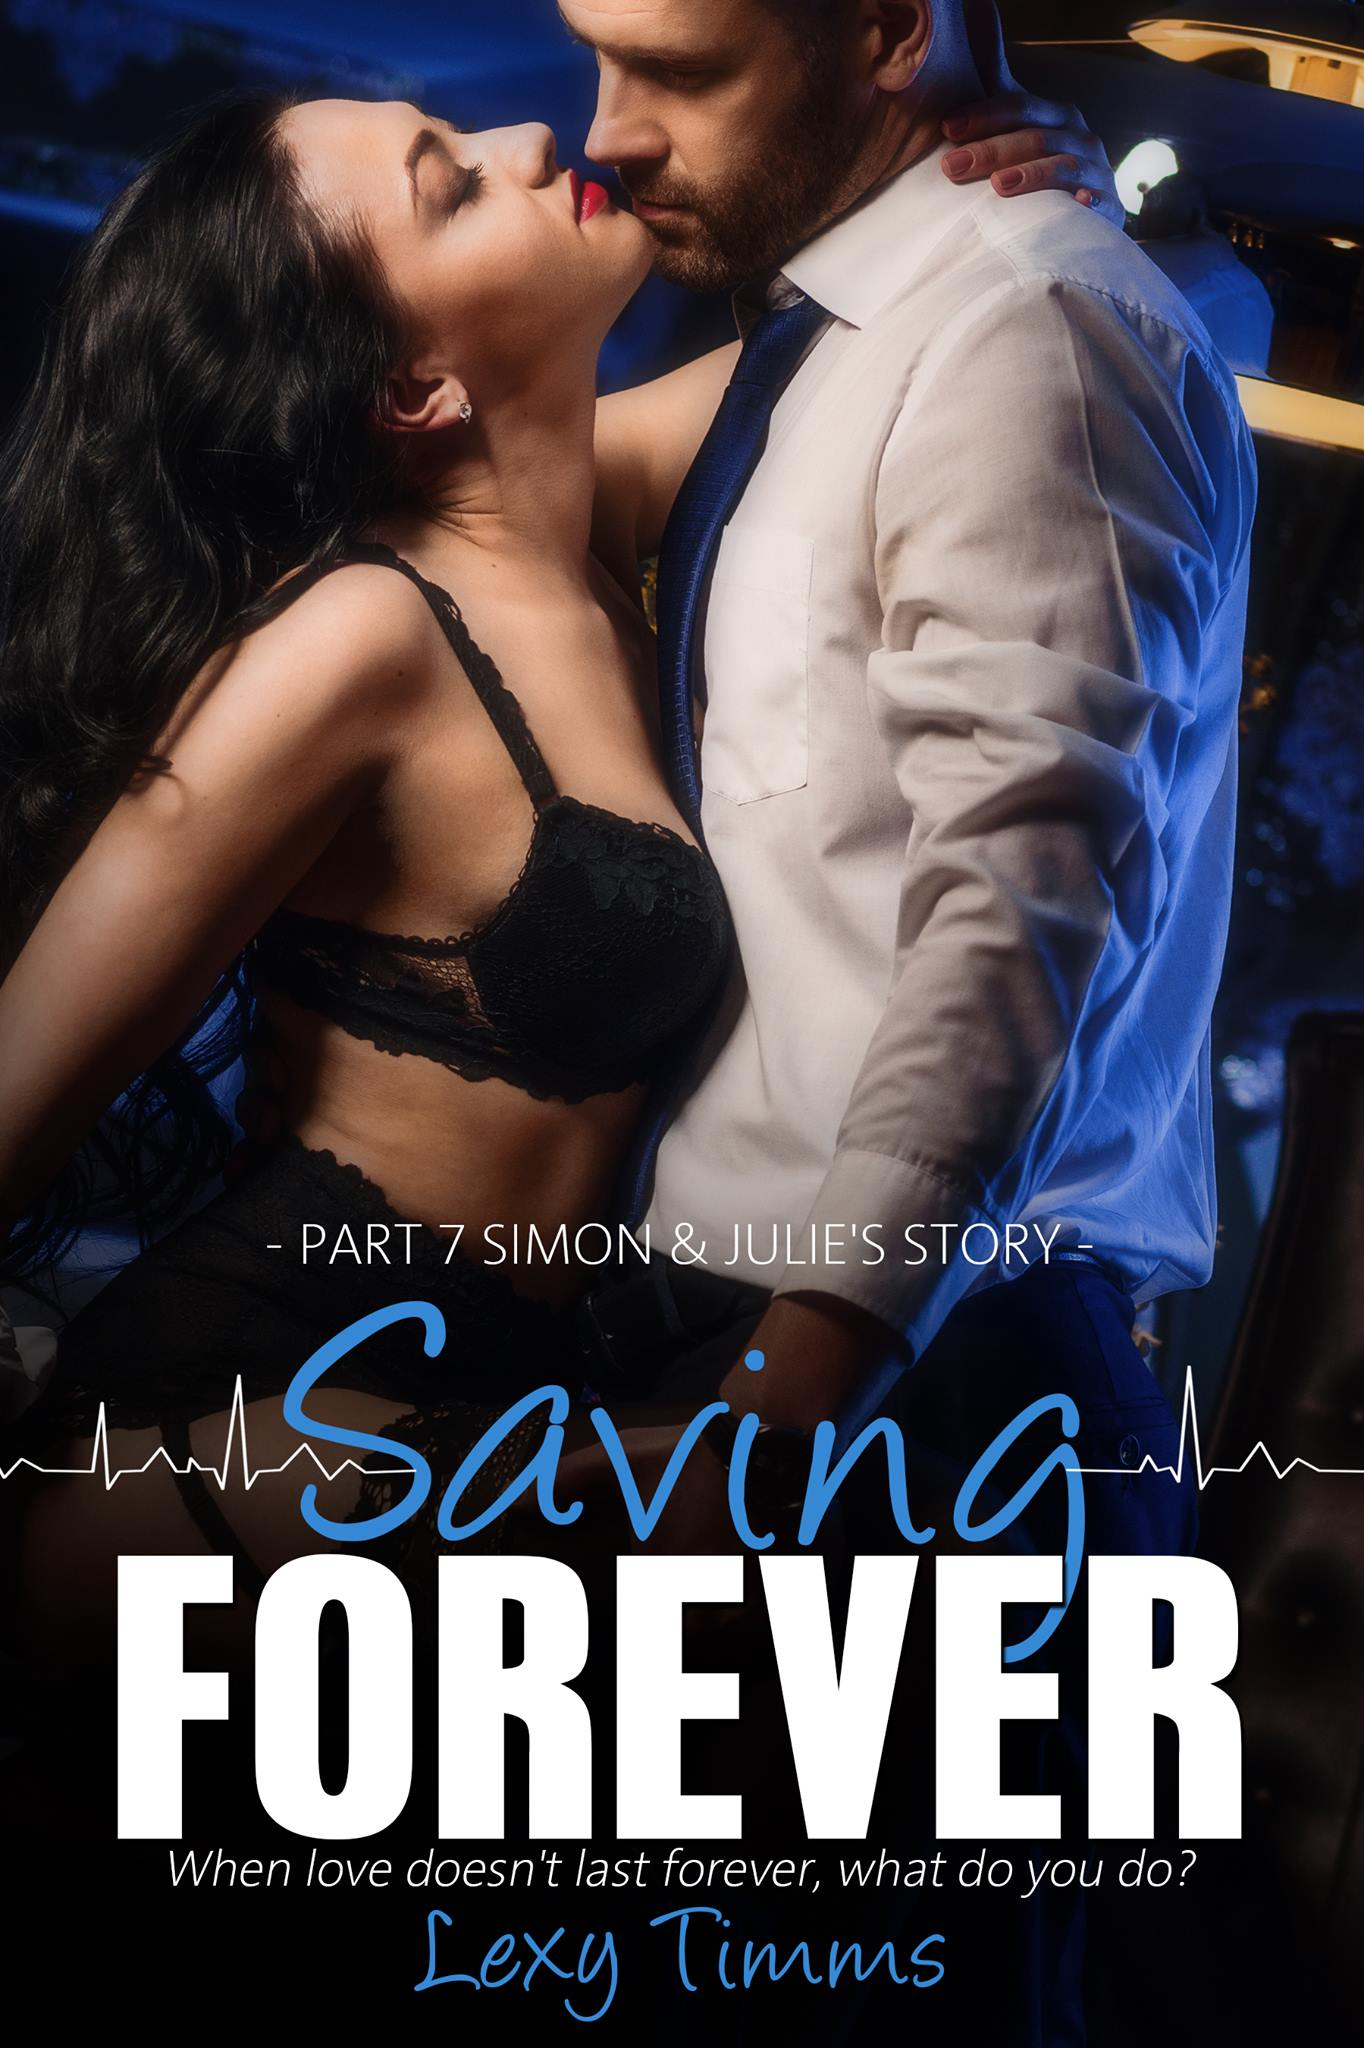 Saving forever - part 7